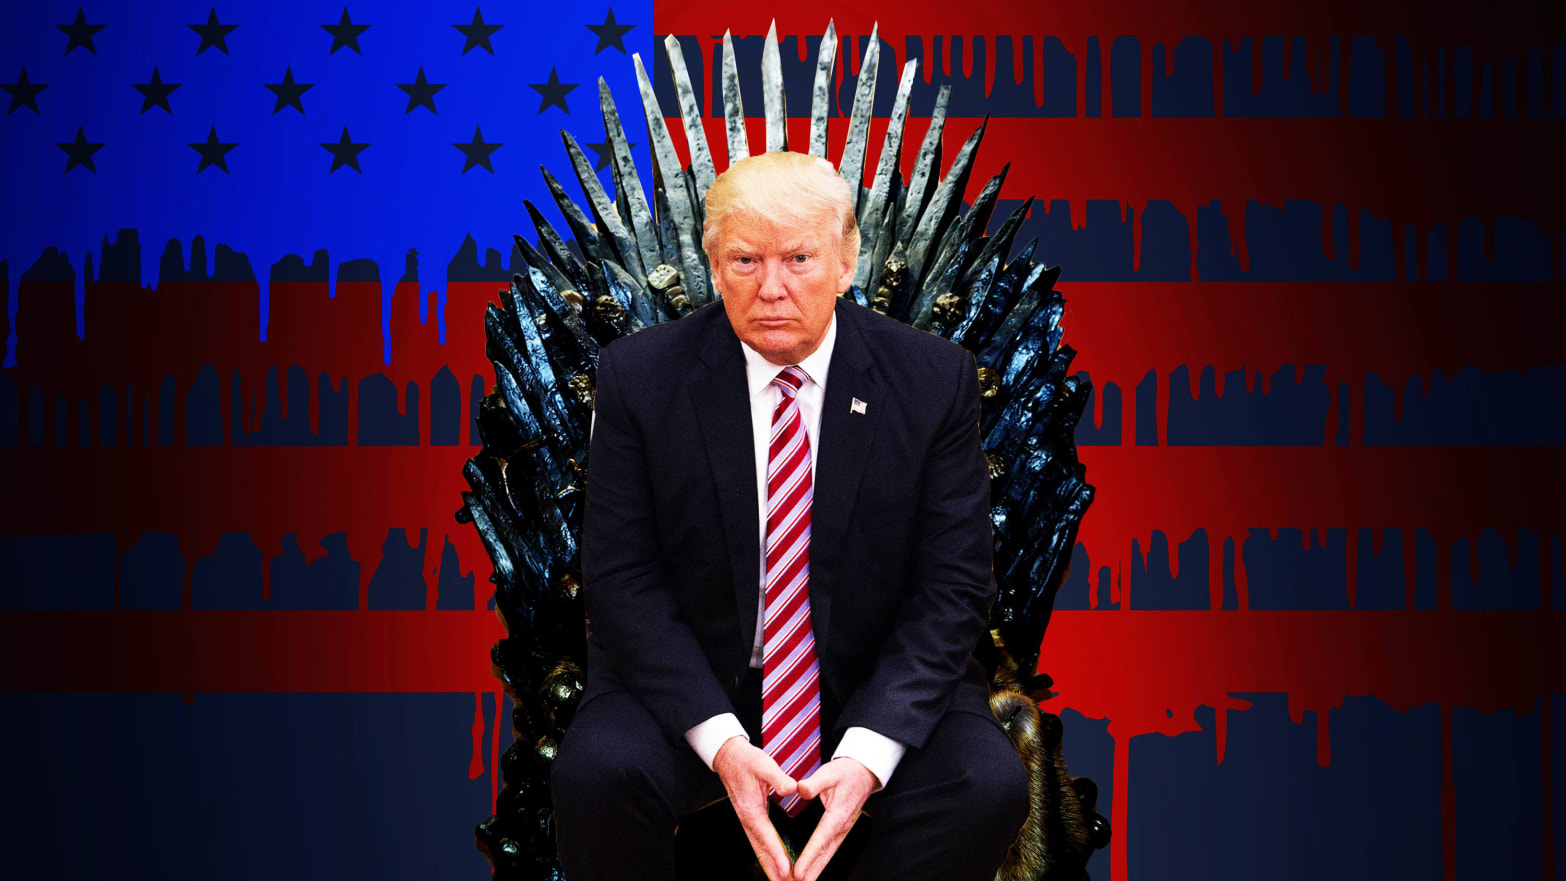 Trump Is on the Iron Throne, and American Democracy Is Dead